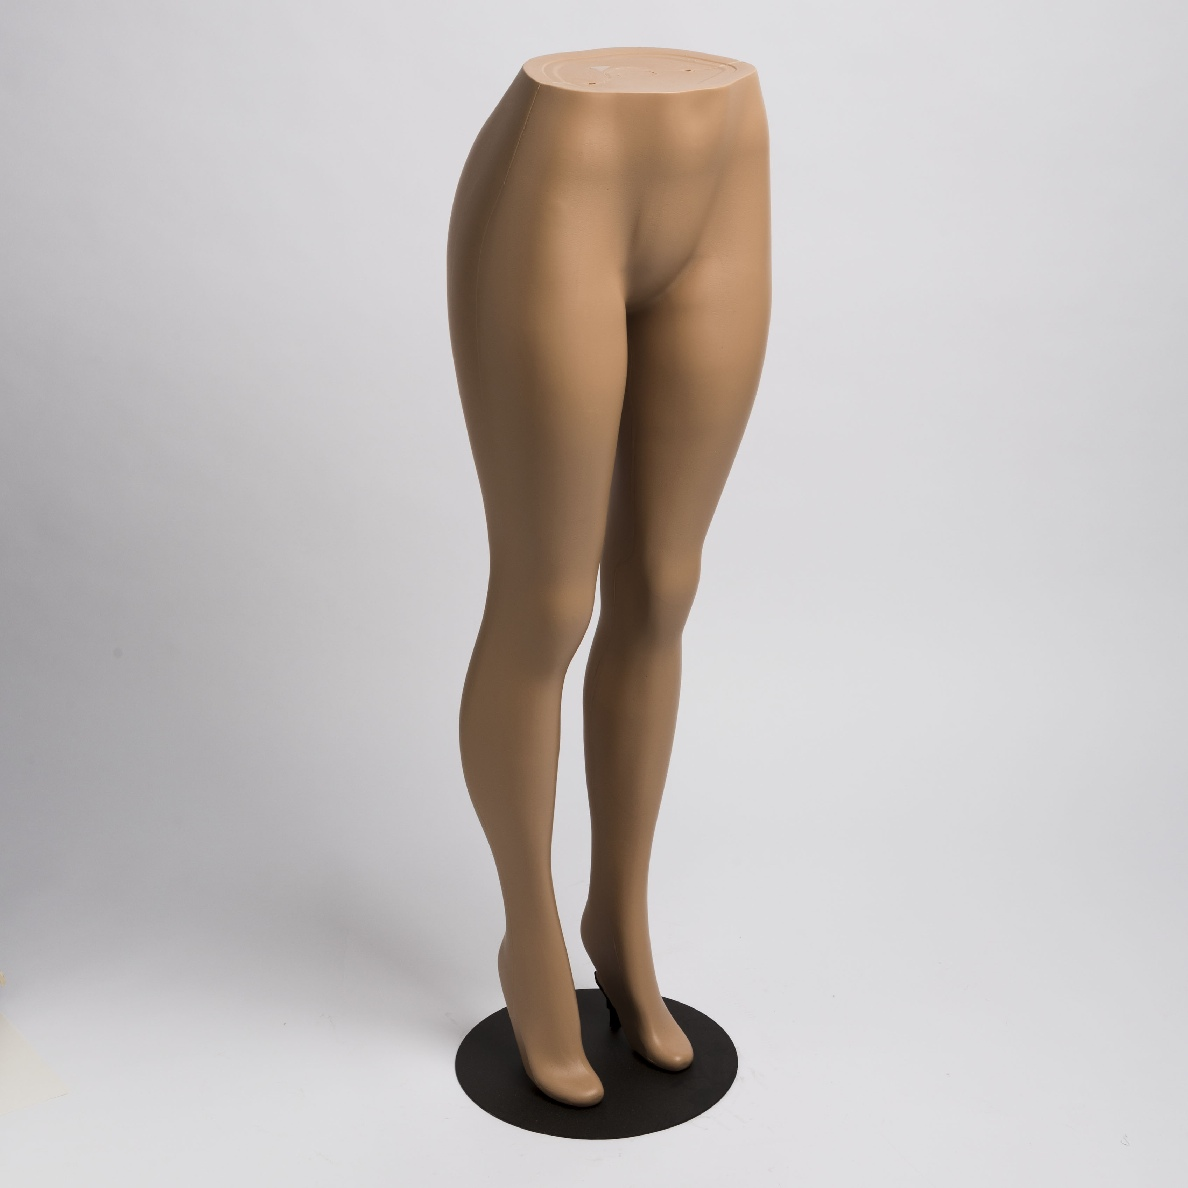 Female Lower Body Mannequin